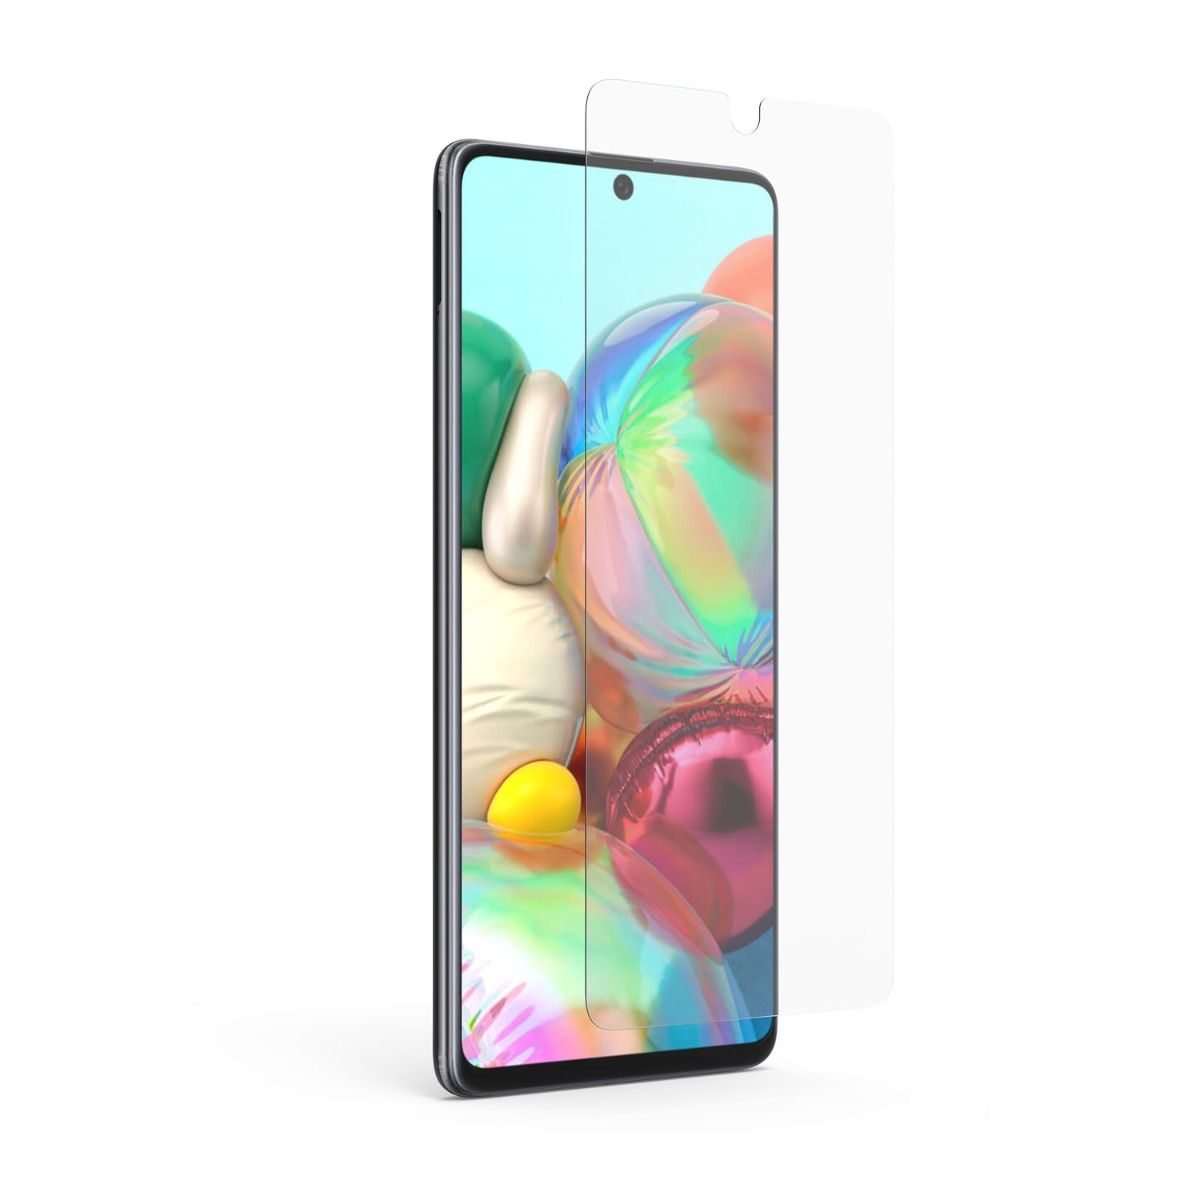 Samsung Galaxy A71 5G/UW 5G High-Definition Glass Screen Protector with Alignment Tray